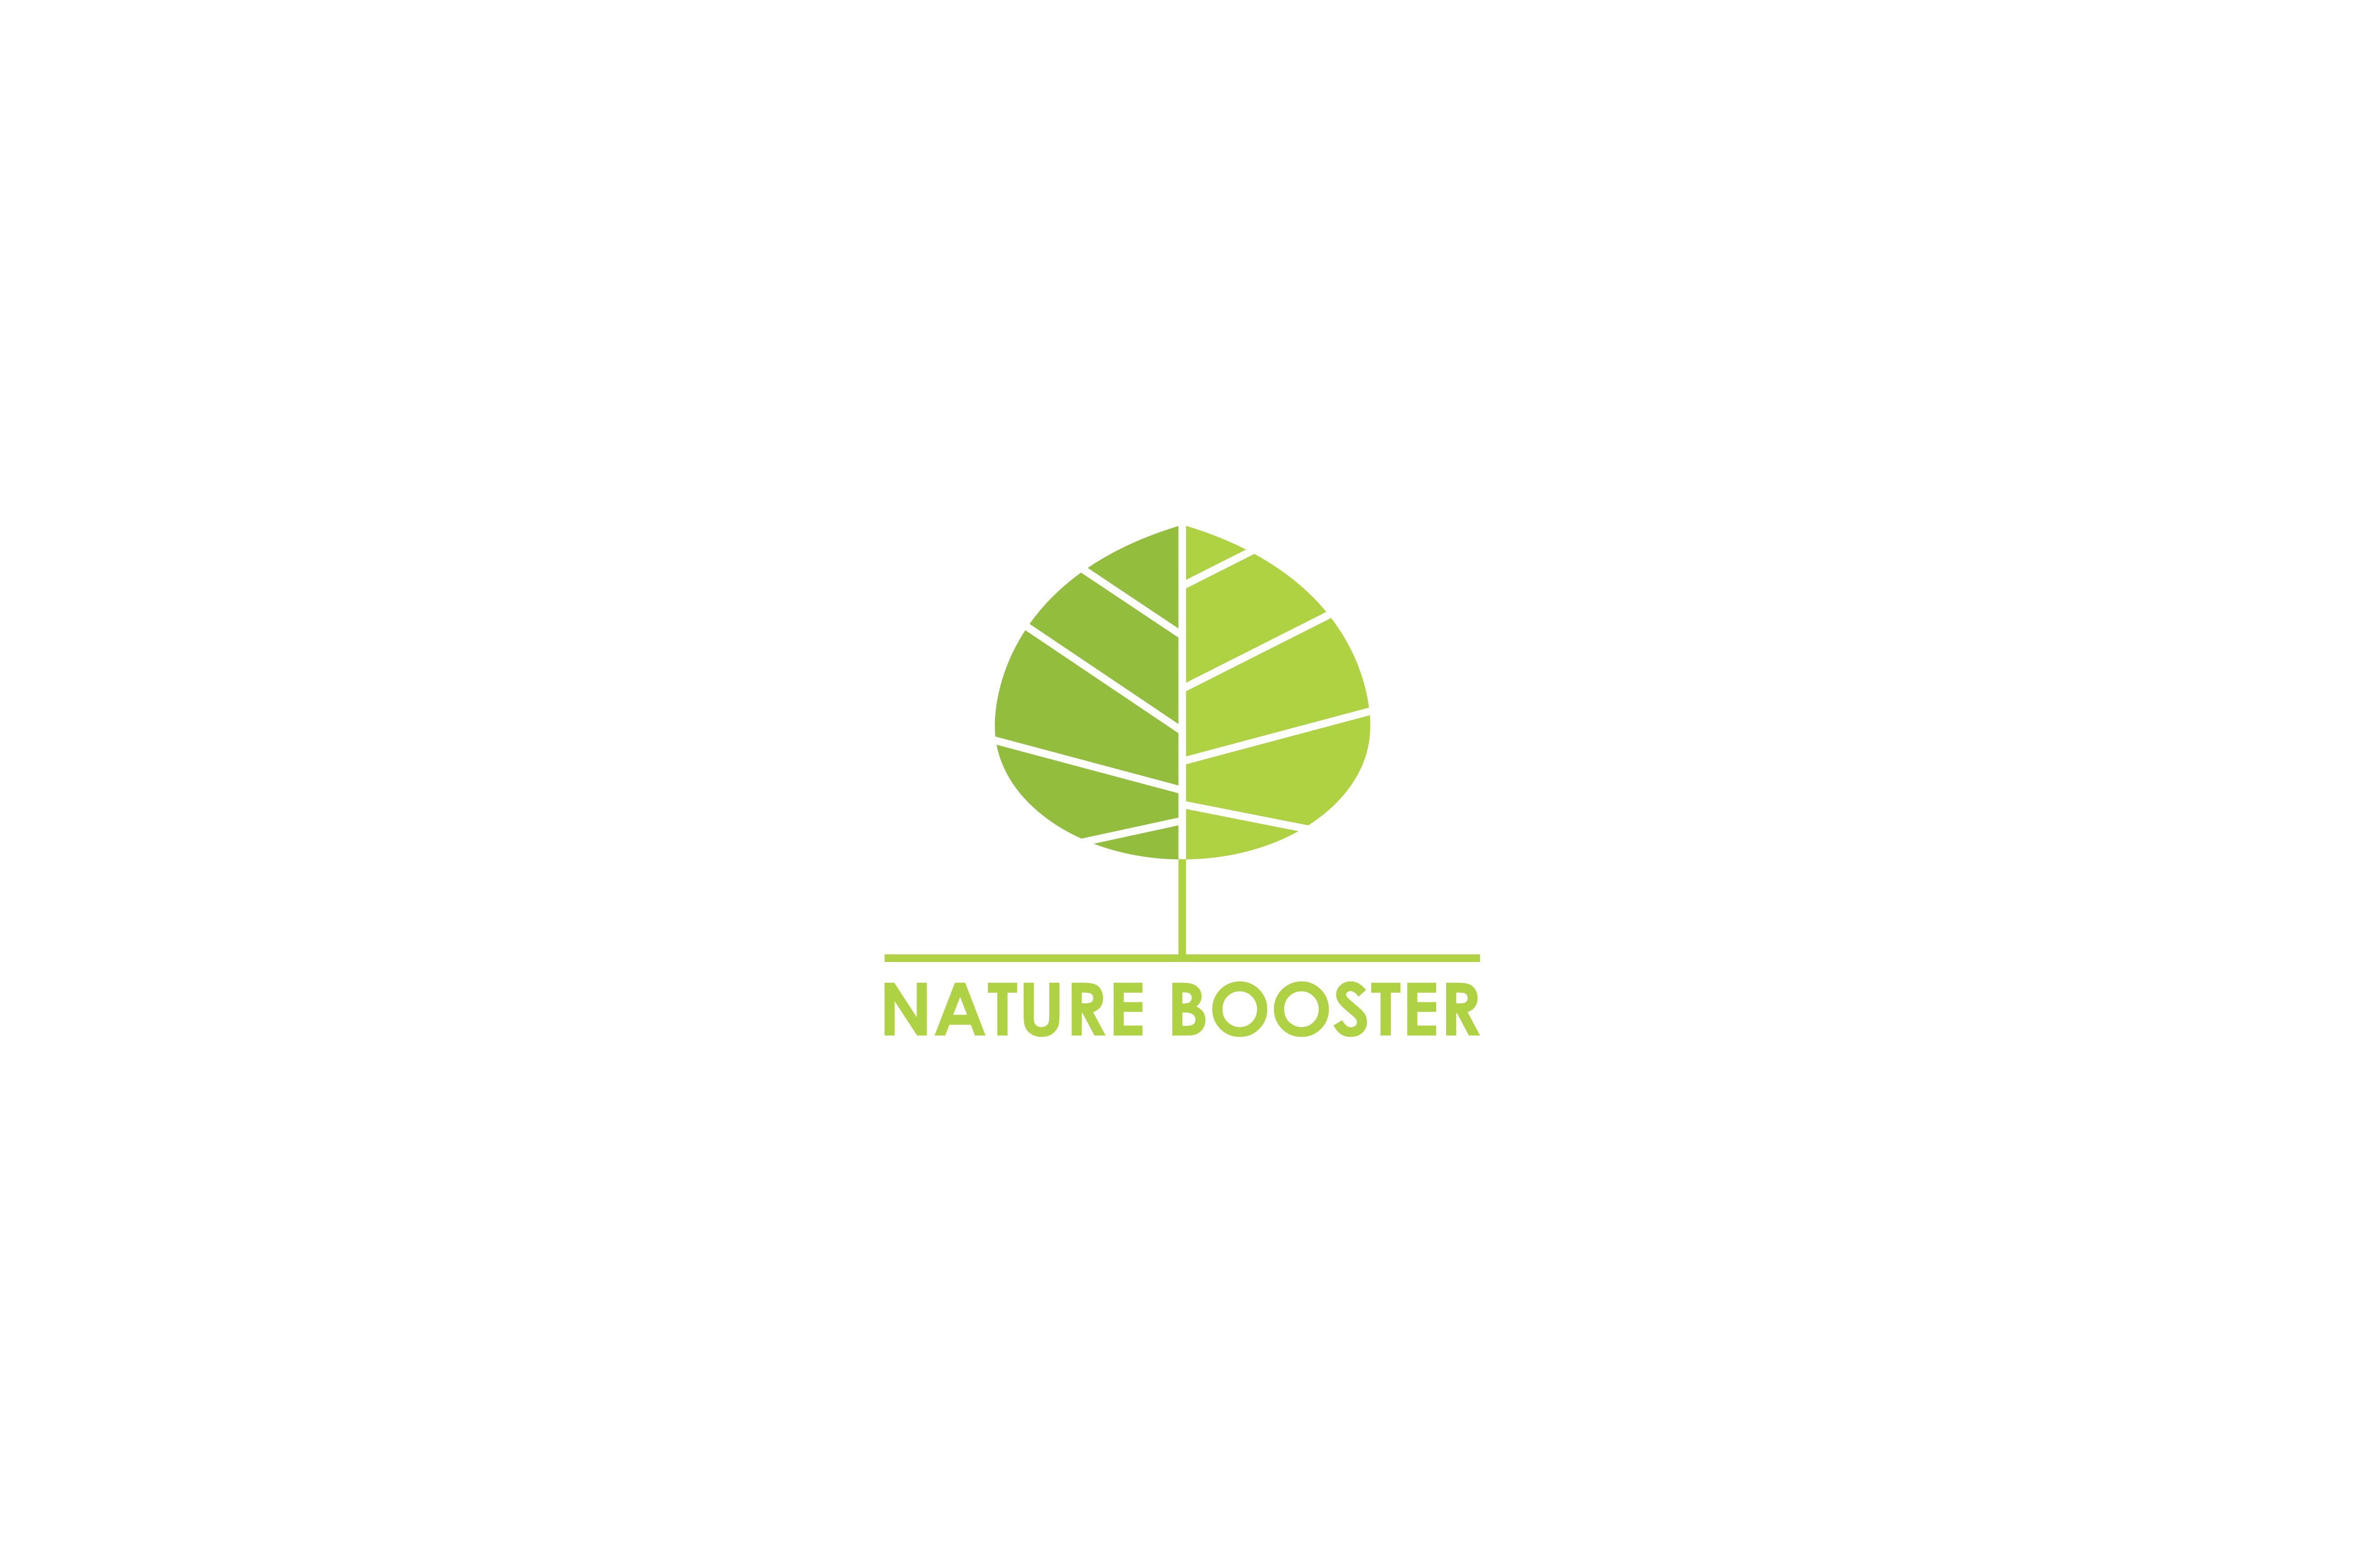 Nature Booster Stationary-01